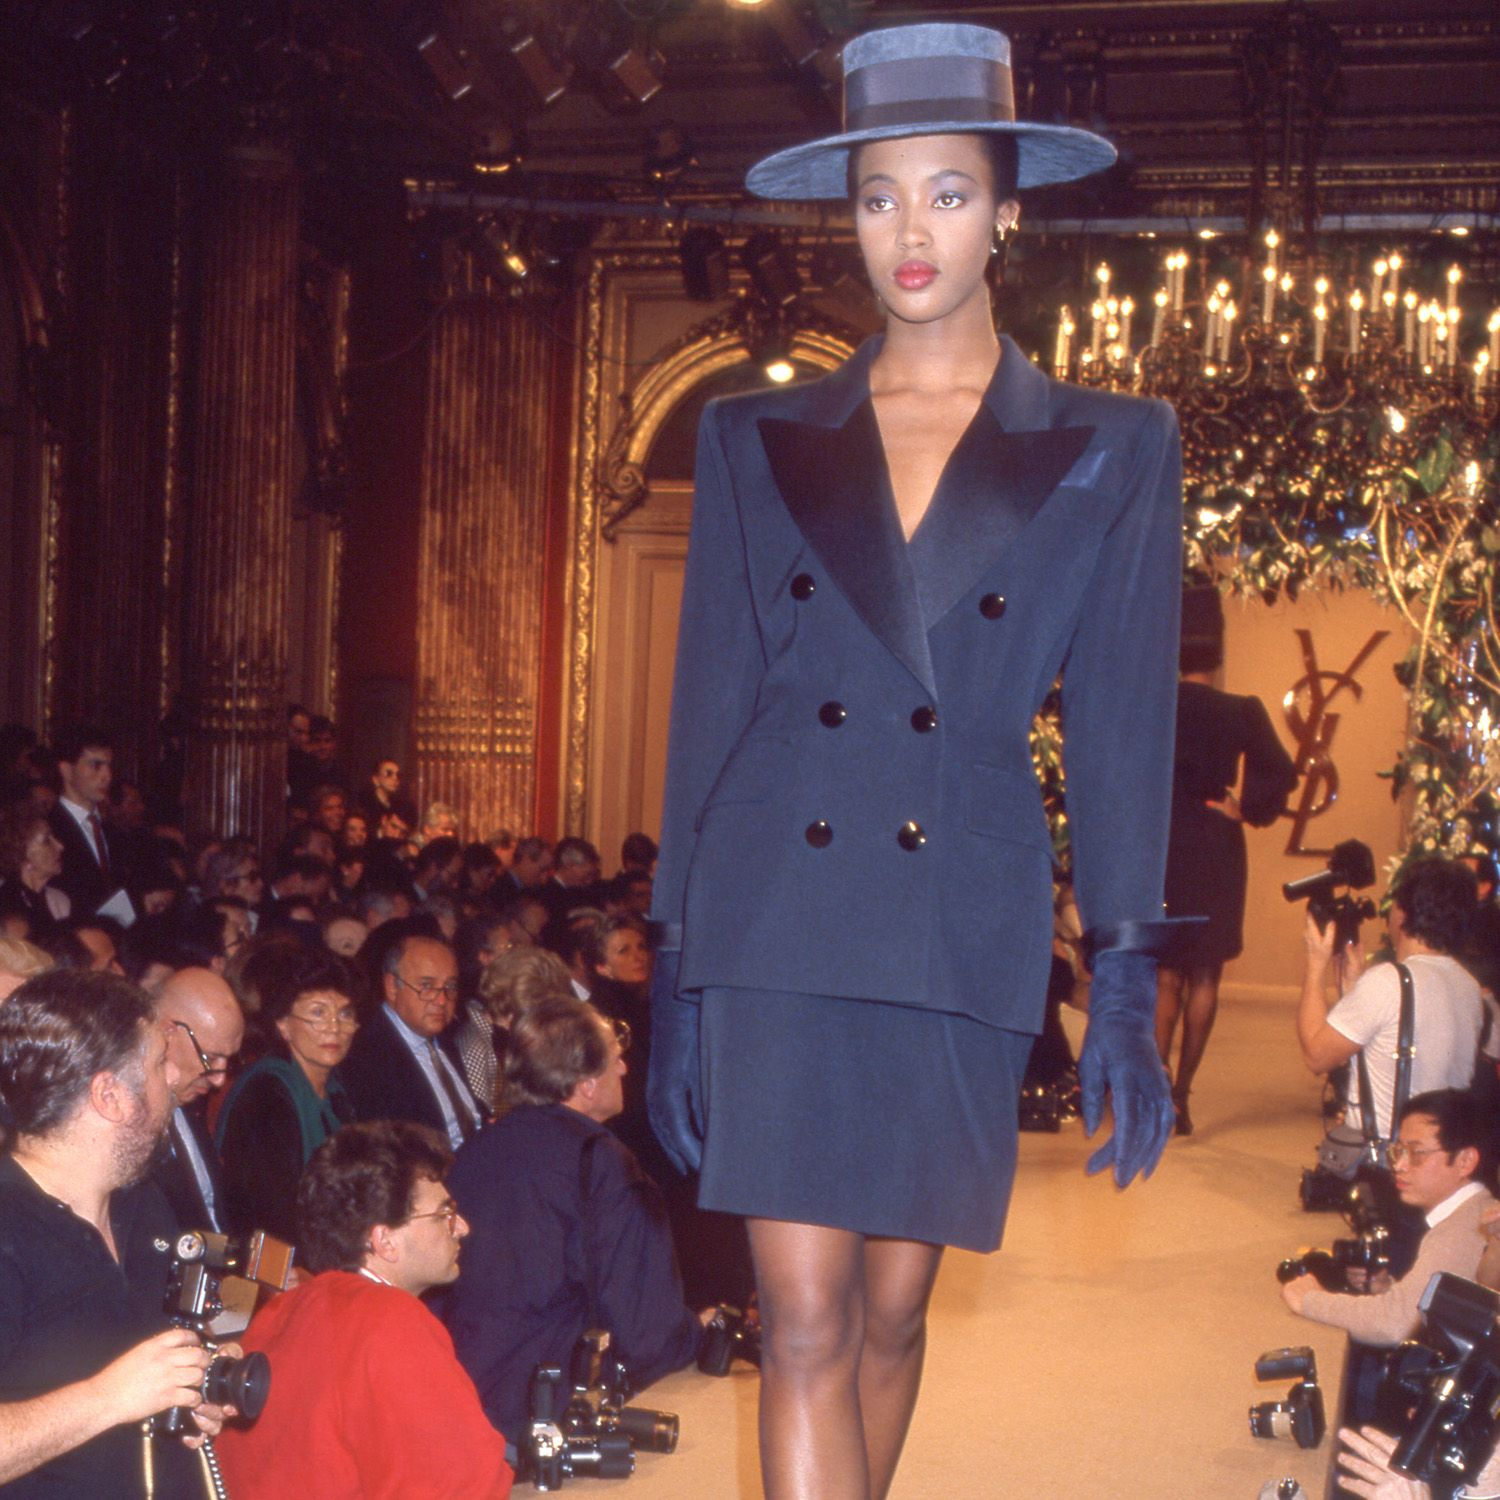 ARCHIVES - NAOMI CAMPBELL - DEFILE DE MODE YVES SAINT LAURENT COLLECTION PRET A PORTER PRINTEMPS ETE 1988 A PARIS&#xA&#x3B;&#xA&#x3B;